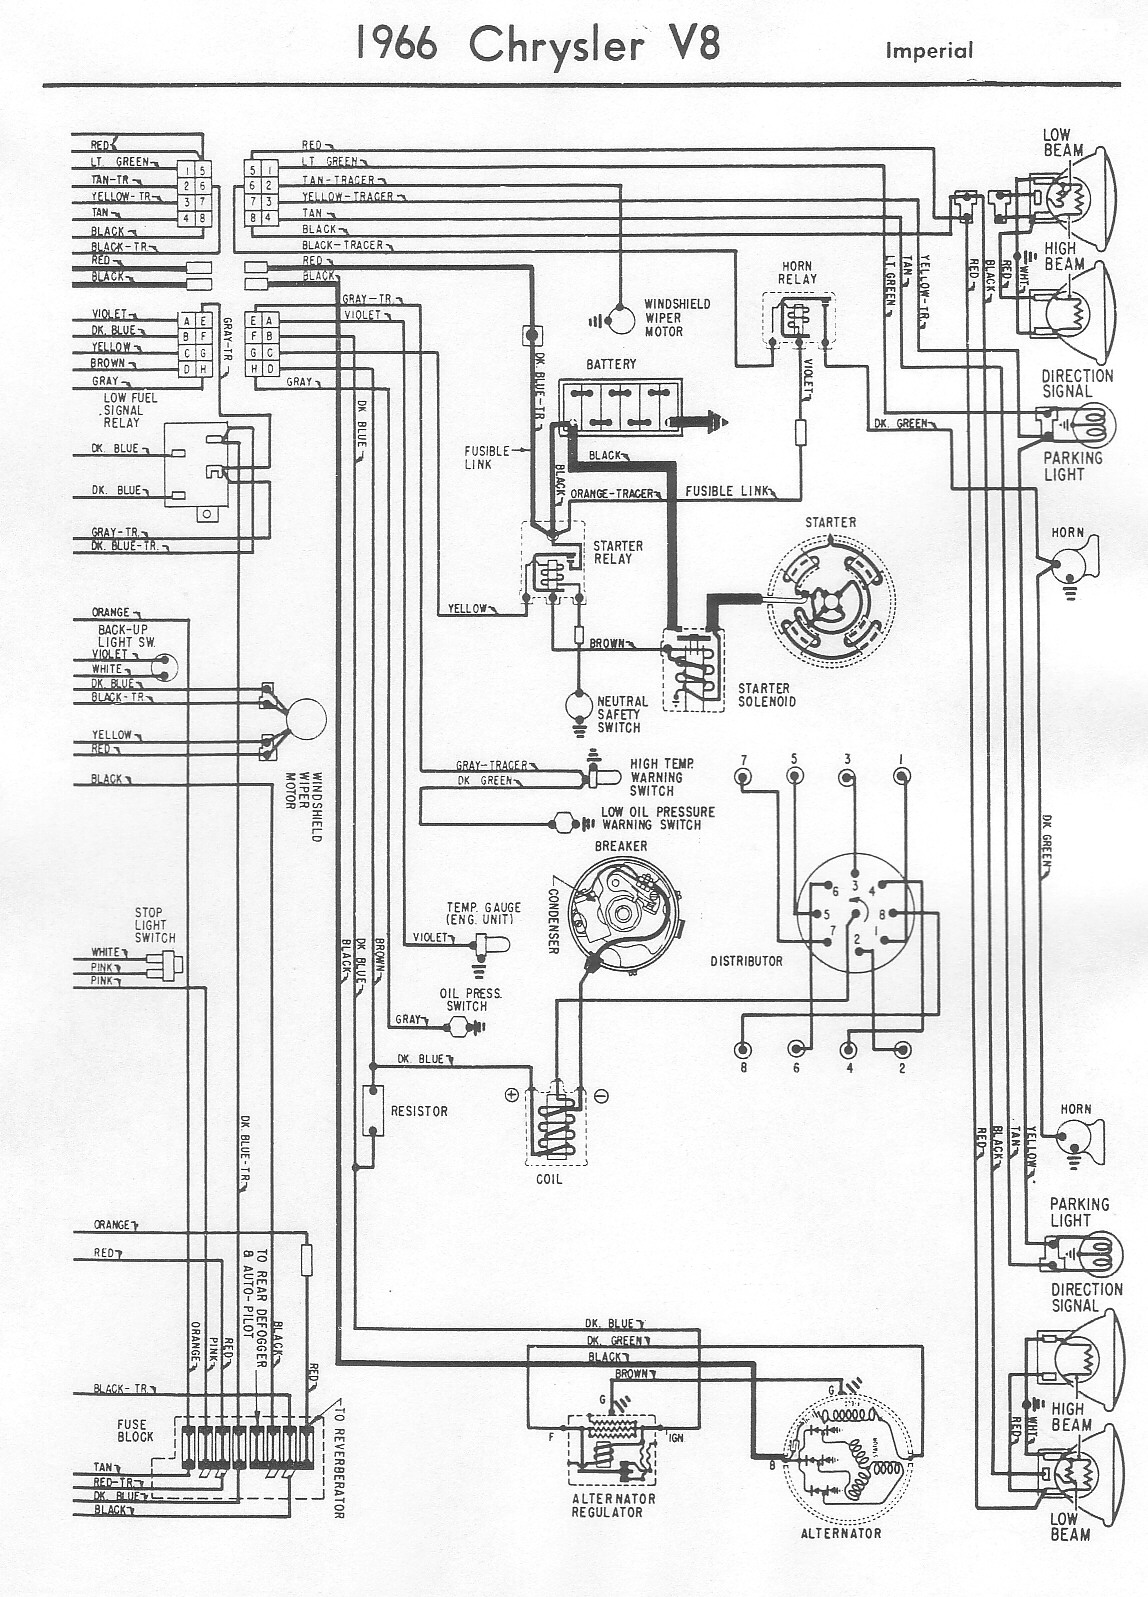 October 2014 Circuit Diagram For Learning Um3561 Siren Generator Design Engine Compartment Of 1970 Plymouth Belvedere Gtx